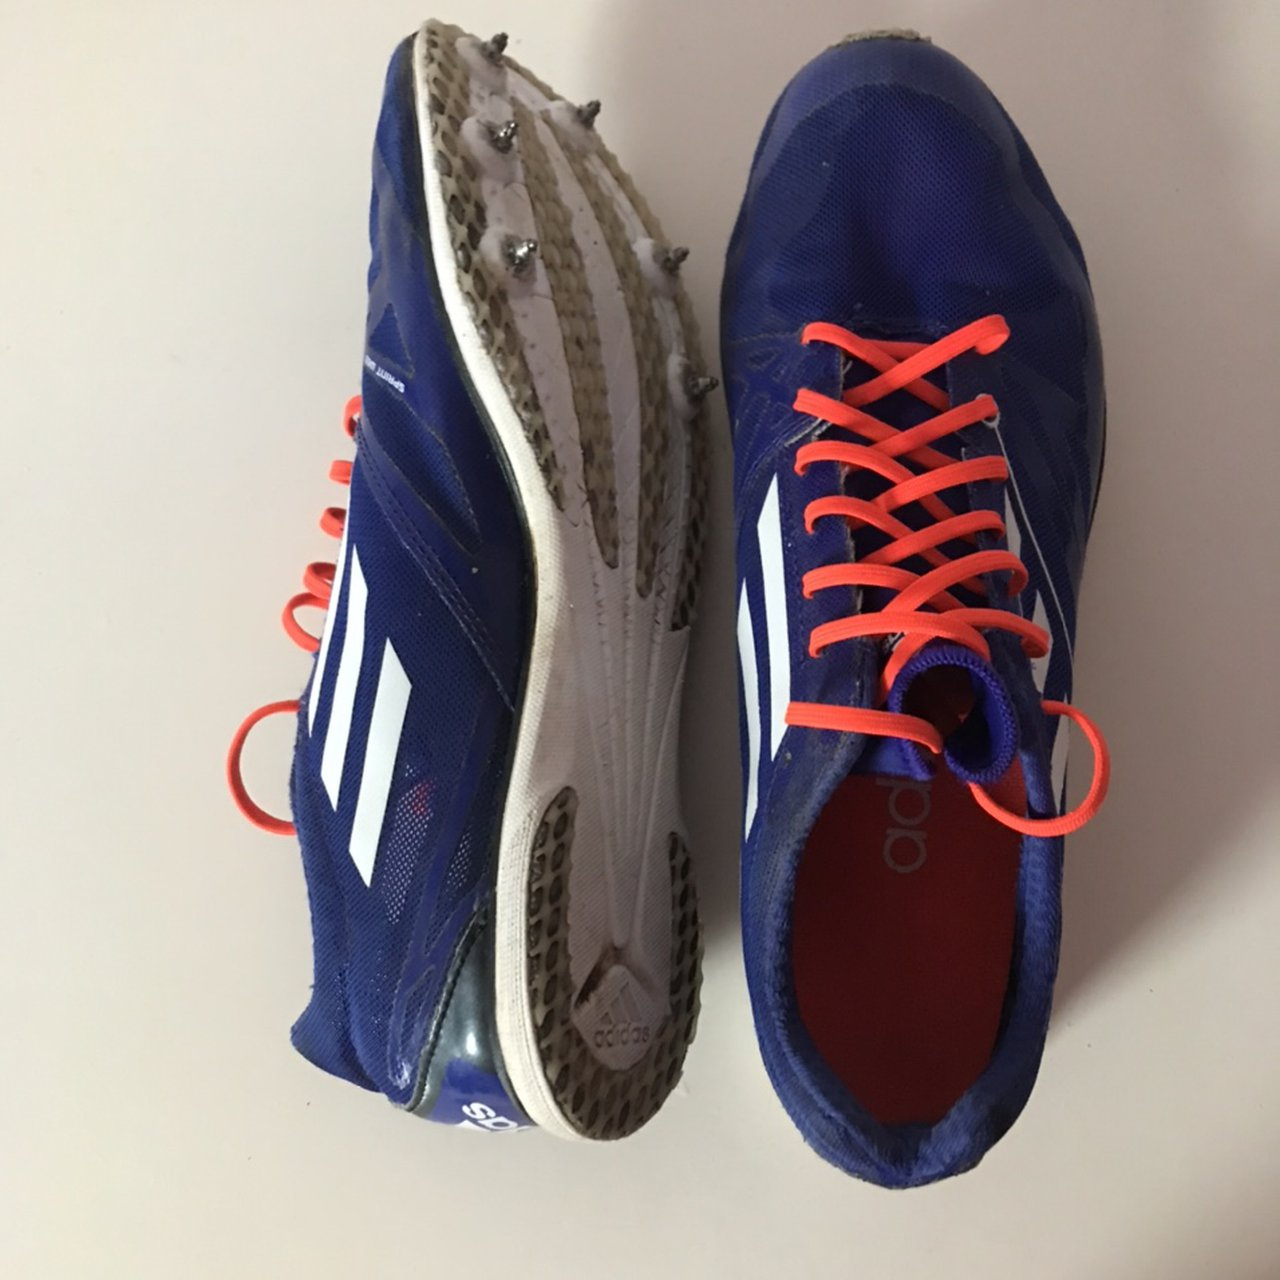 Adidas running spikes size 7. Comes